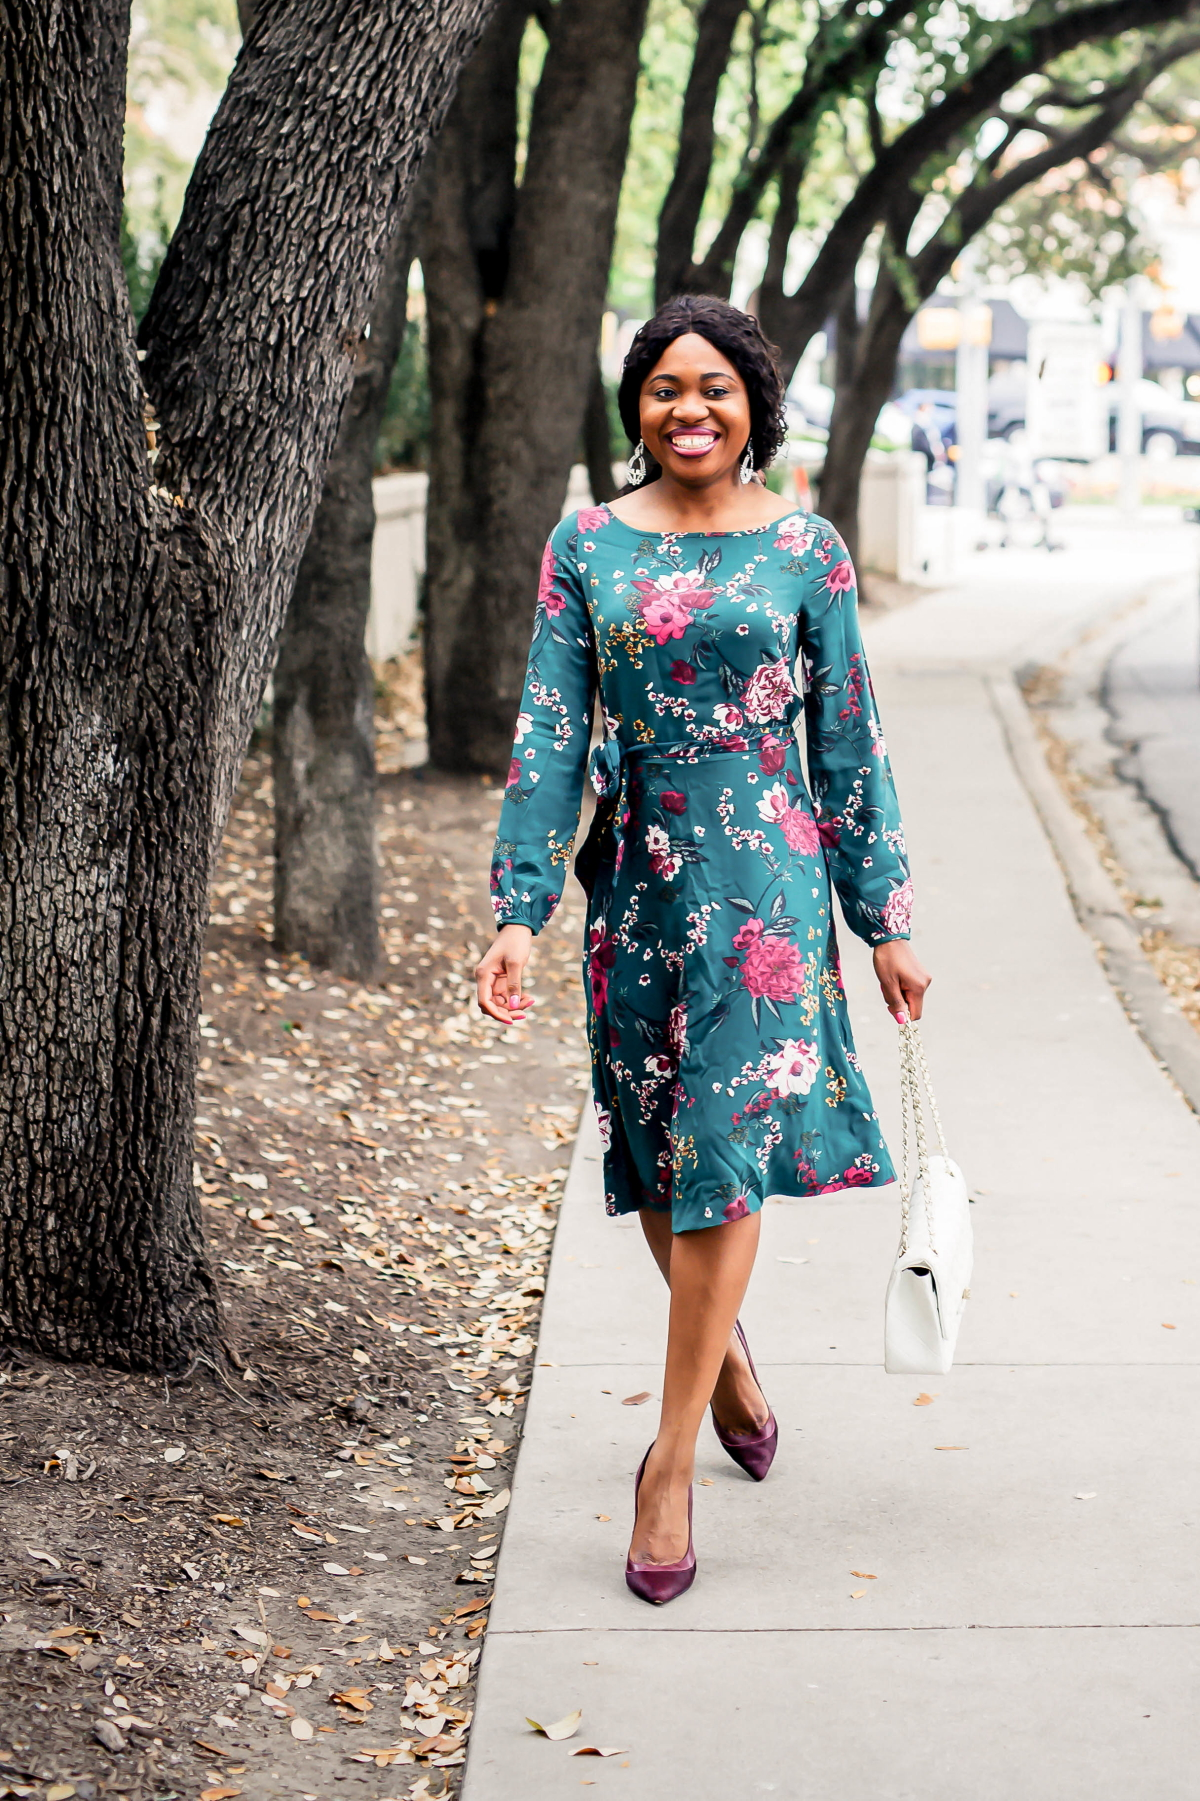 This knee-length a-line dress is seriously the best floral blouson sleeve dress for summer. A nice but not overpowering contrast of colors makes this dress perfect for weddings, cocktails, work, and red carpet events. Your wallet will thank you too. #summerfashiontrends #weddingguest